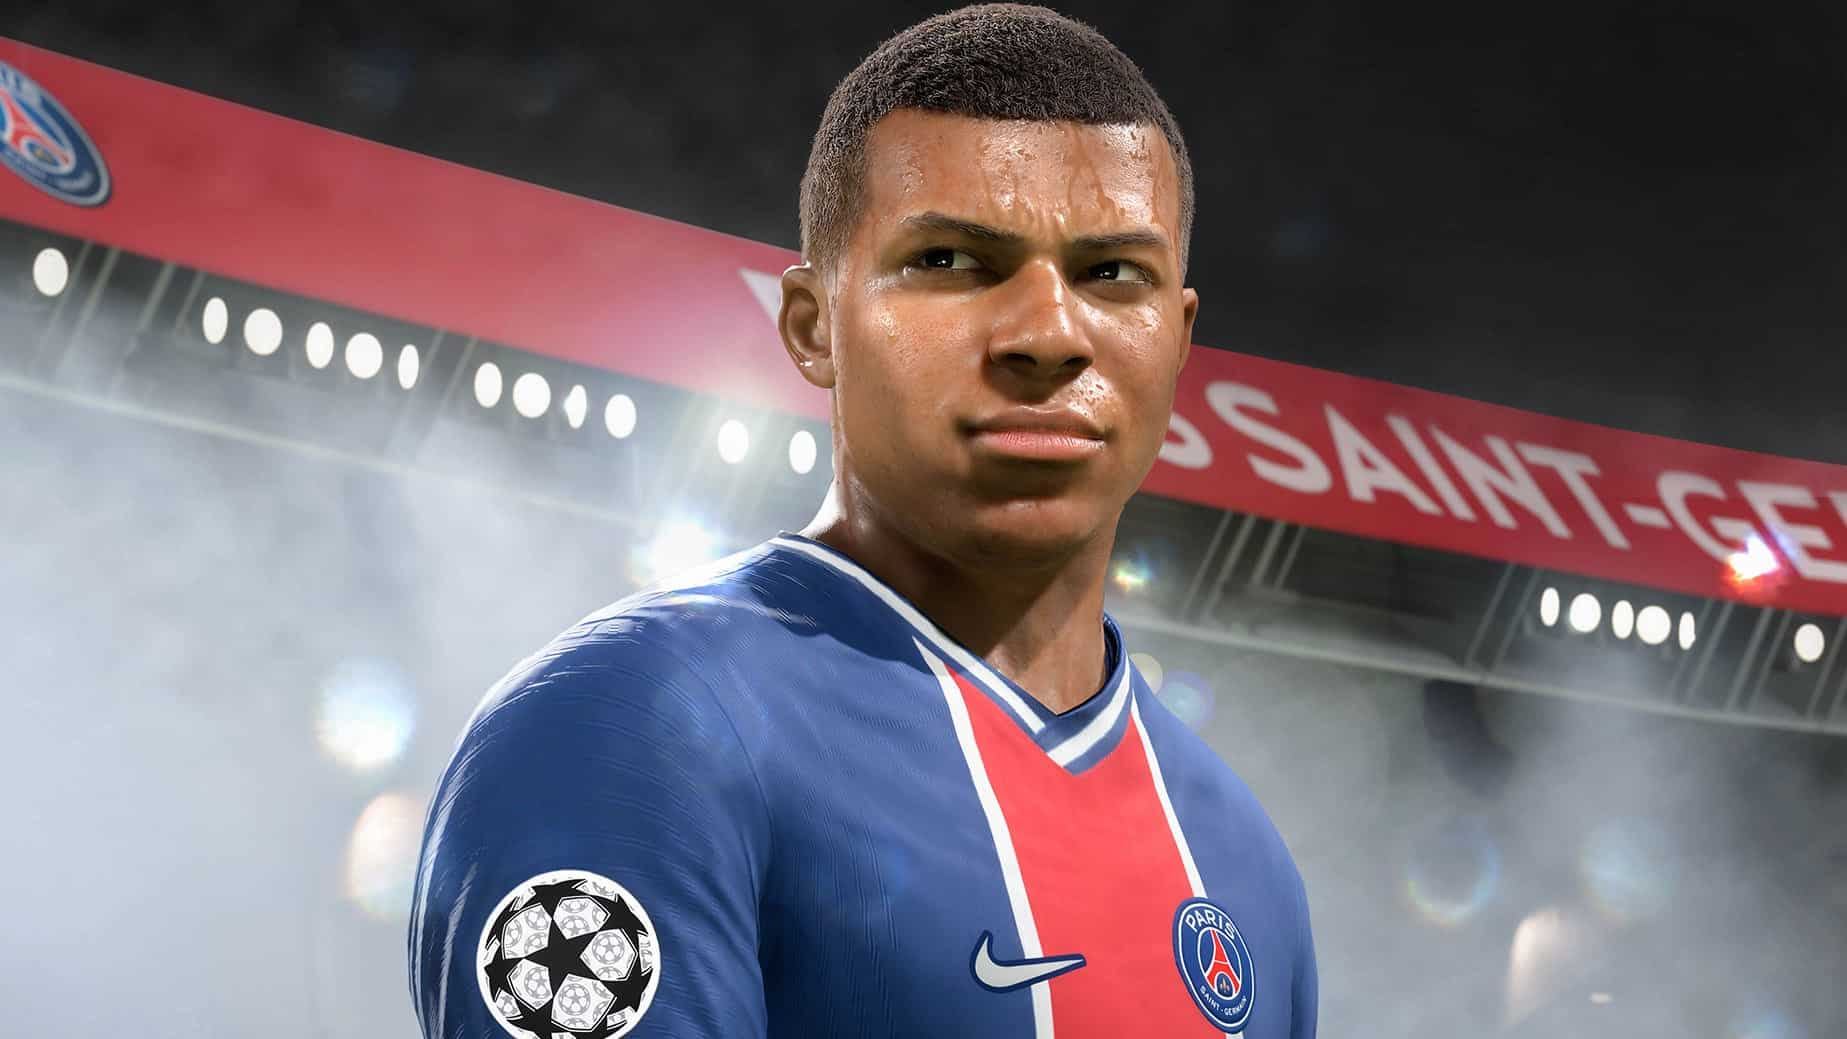 Mbappe pace FIFA 22